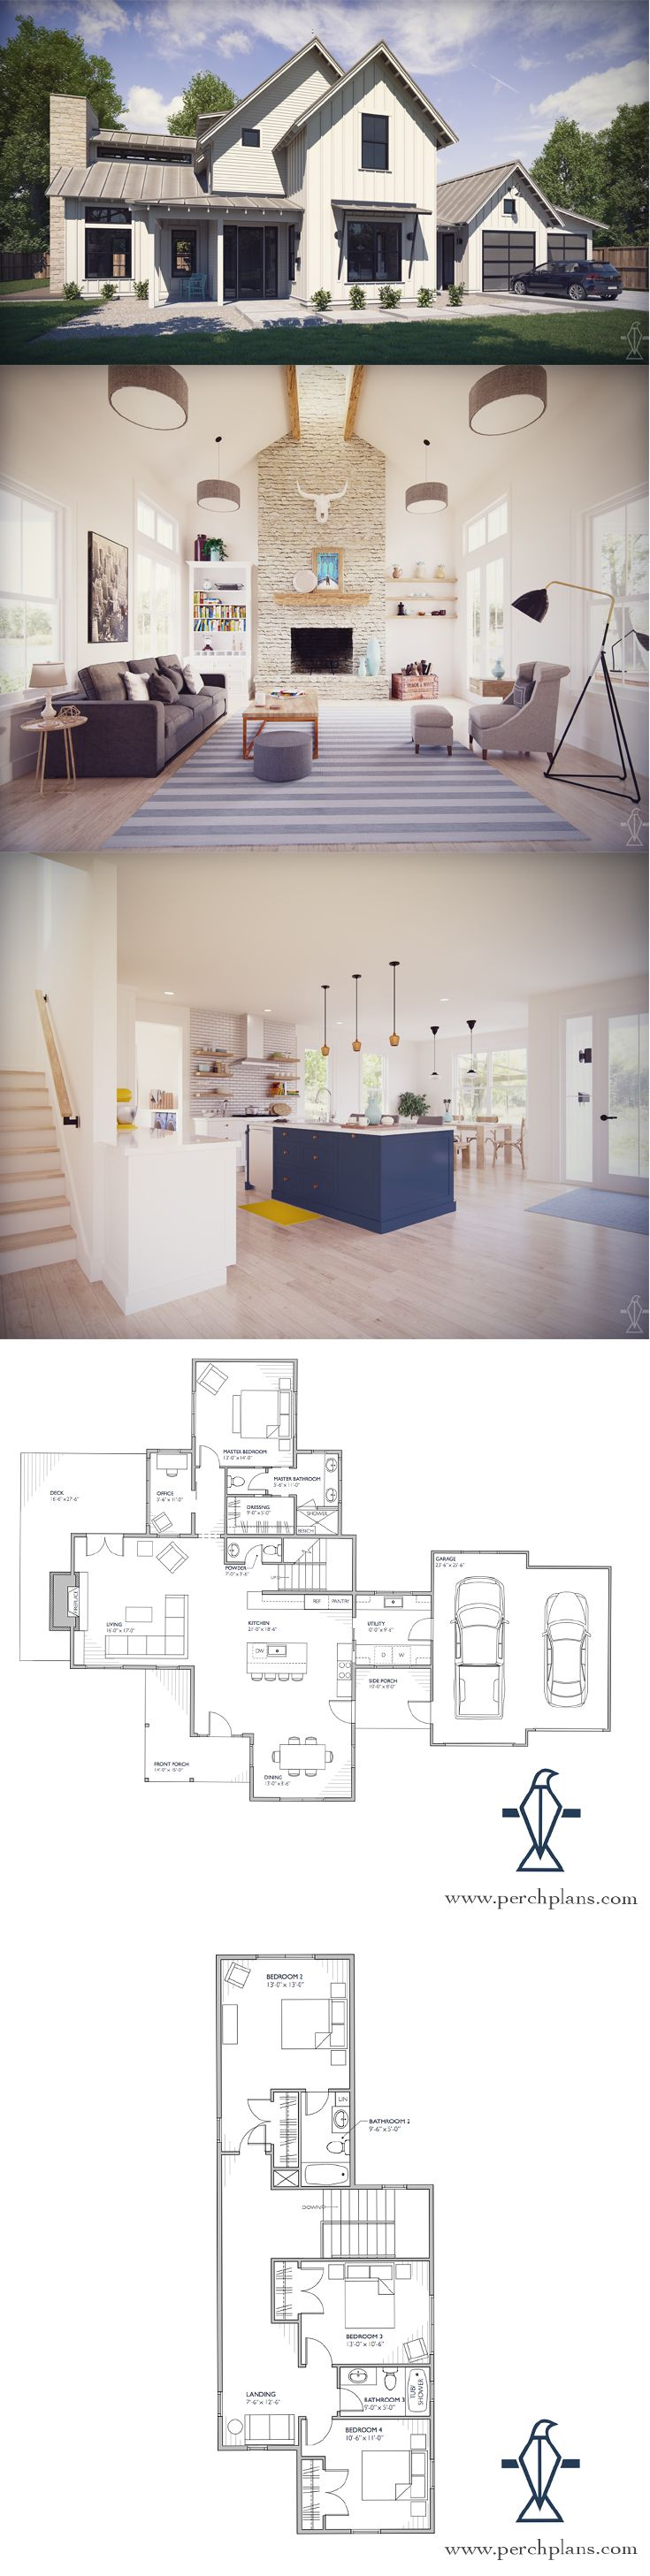 Our Normande modern farmhouse floor plan is perfect for families with its open concept living space, main level master bedroom, and 3 additional bedrooms upstairs.